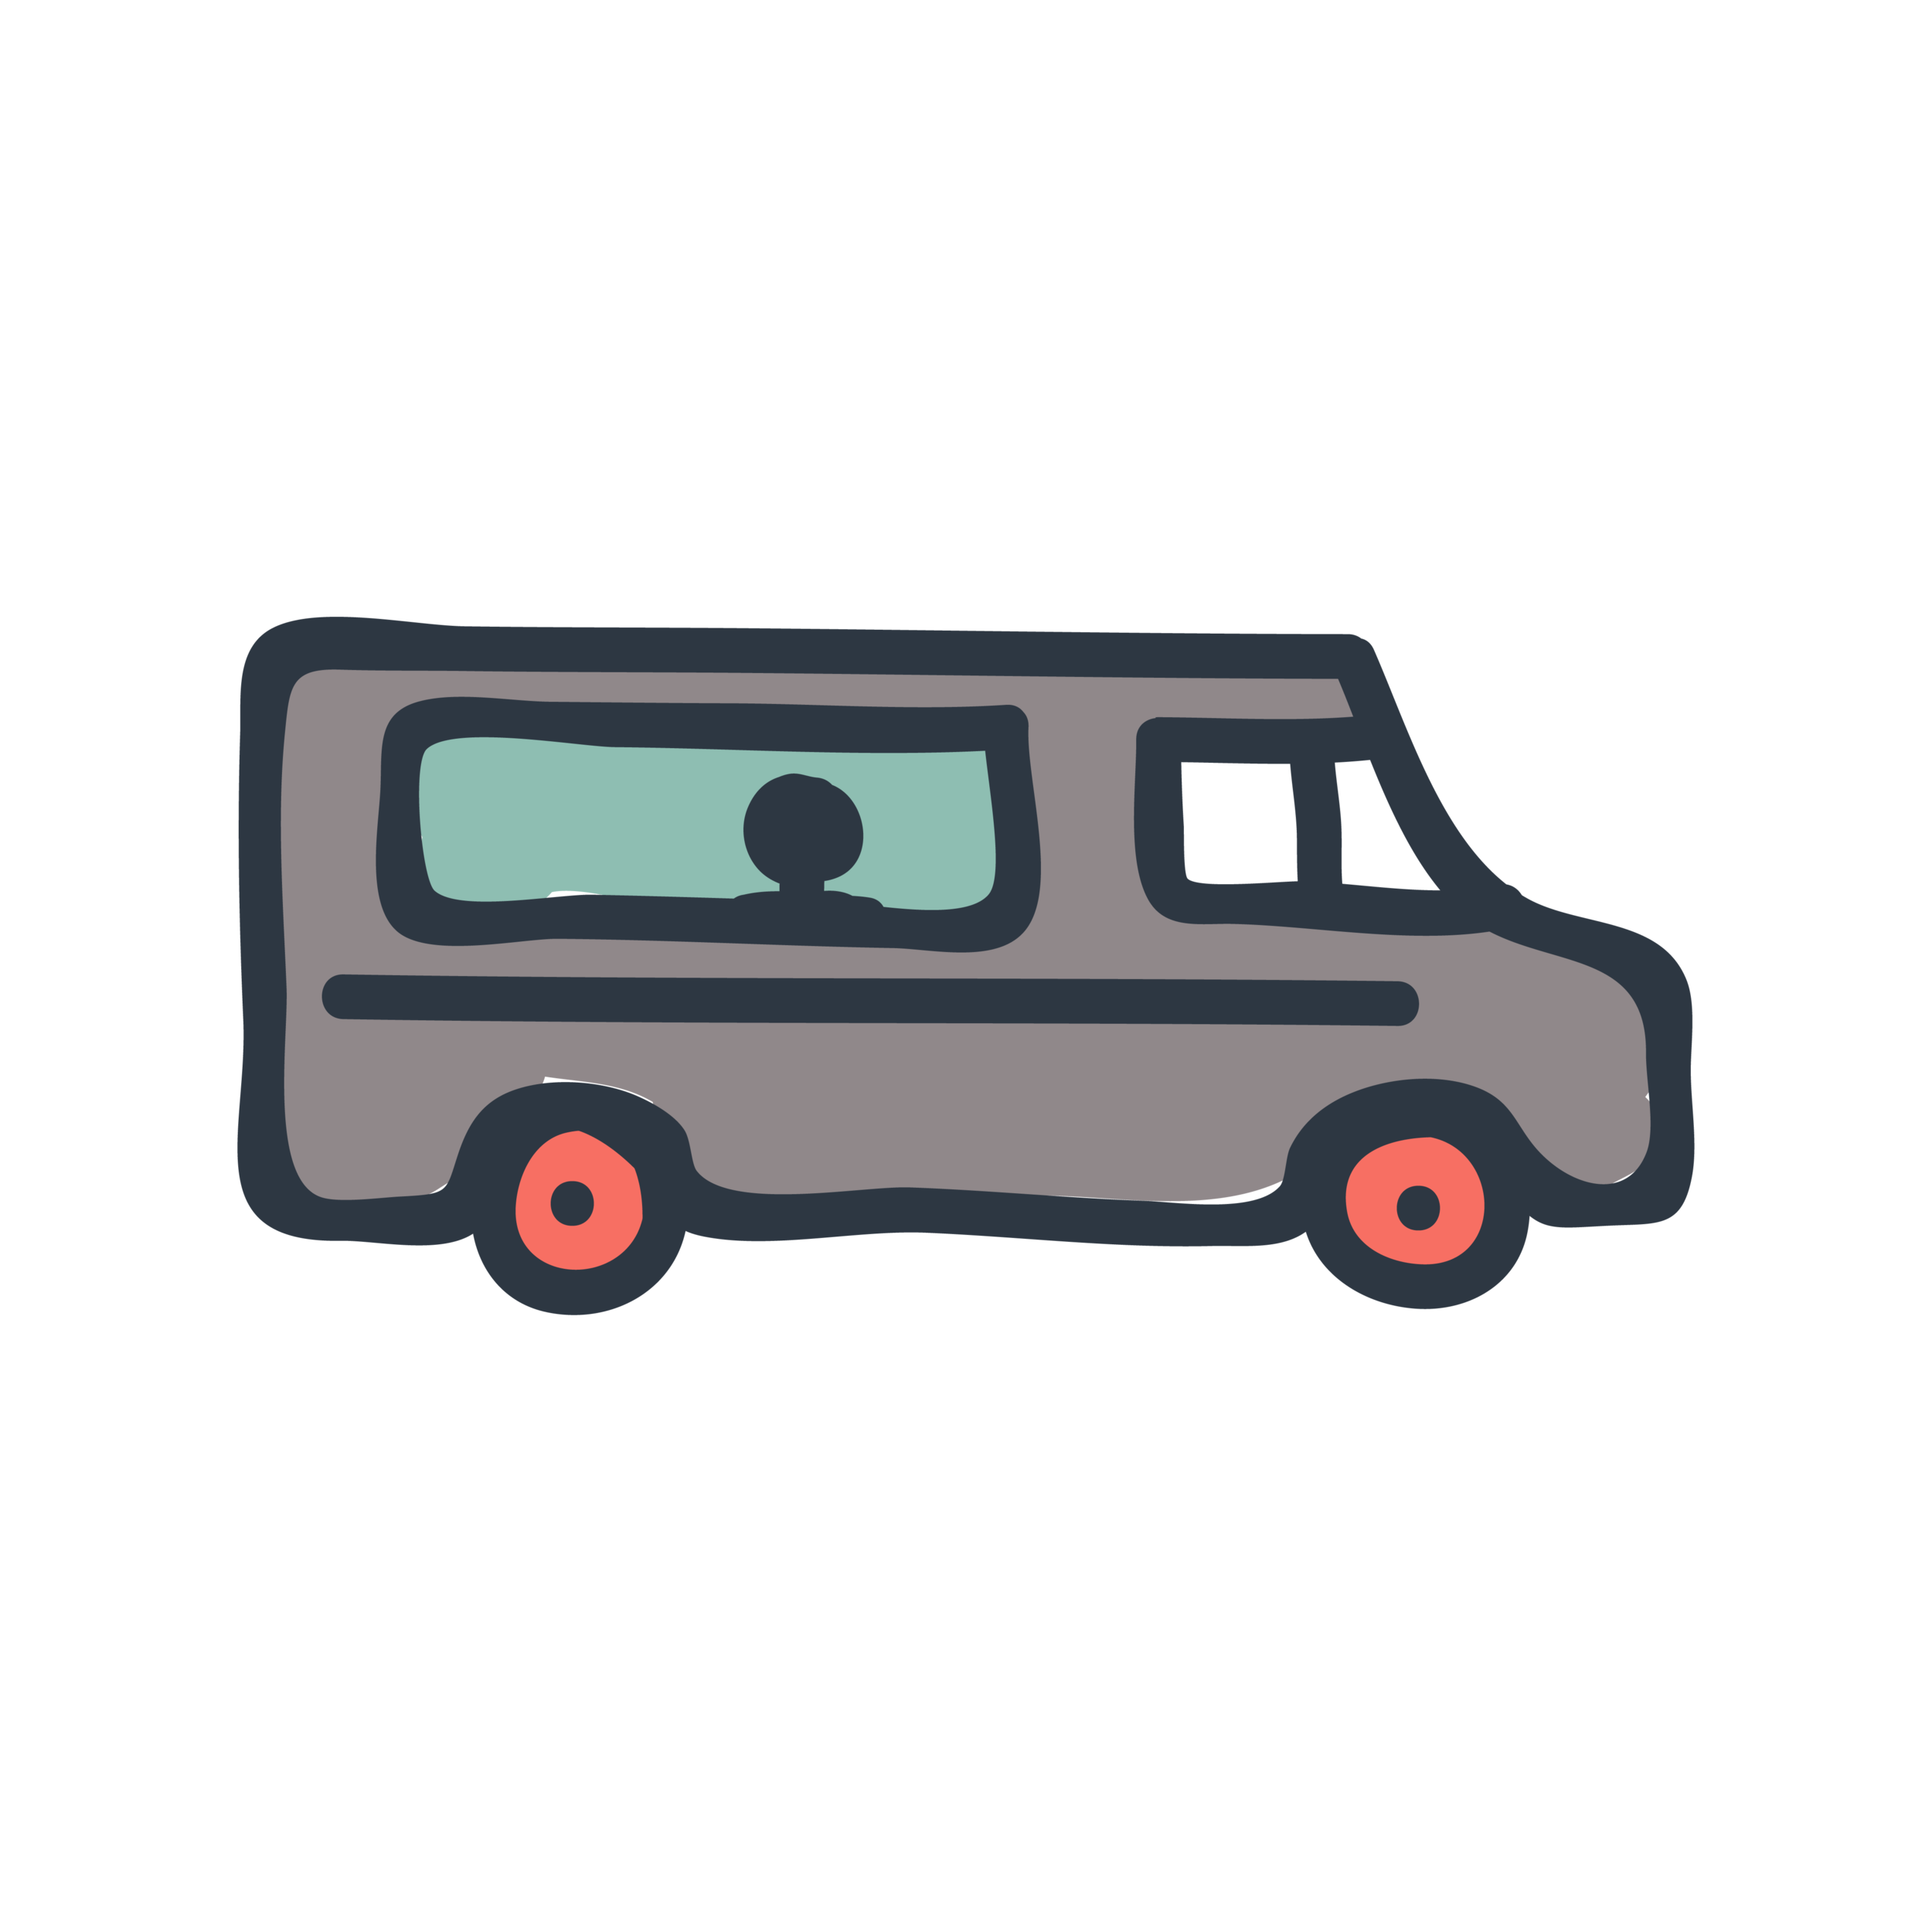 TBR_Icon-Truck.png